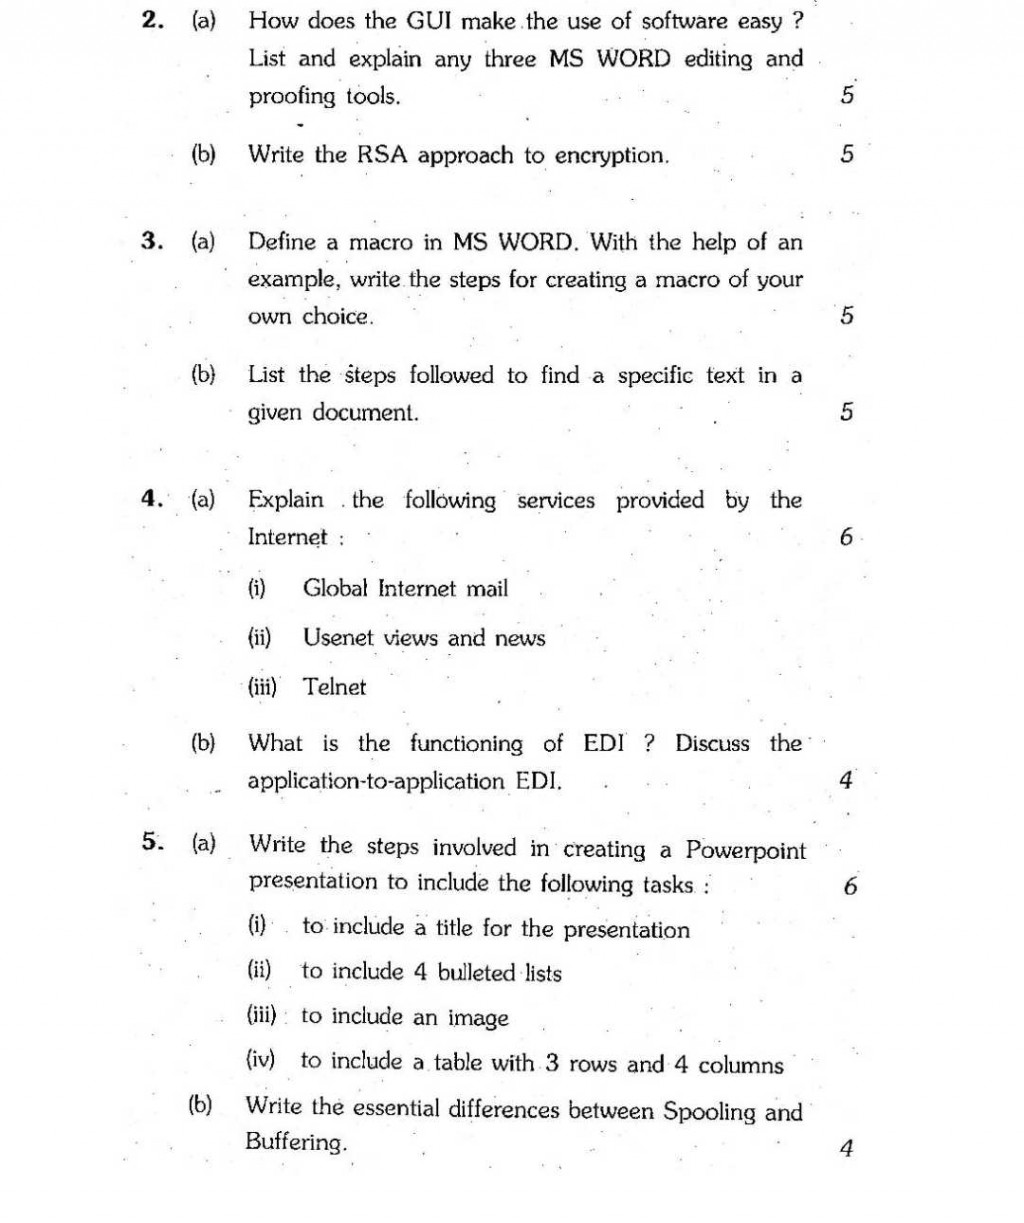 013 Attention Grabbers For Essays Examples Essay Example Ignou Computer Paper Unforgettable Of Expository Persuasive Large